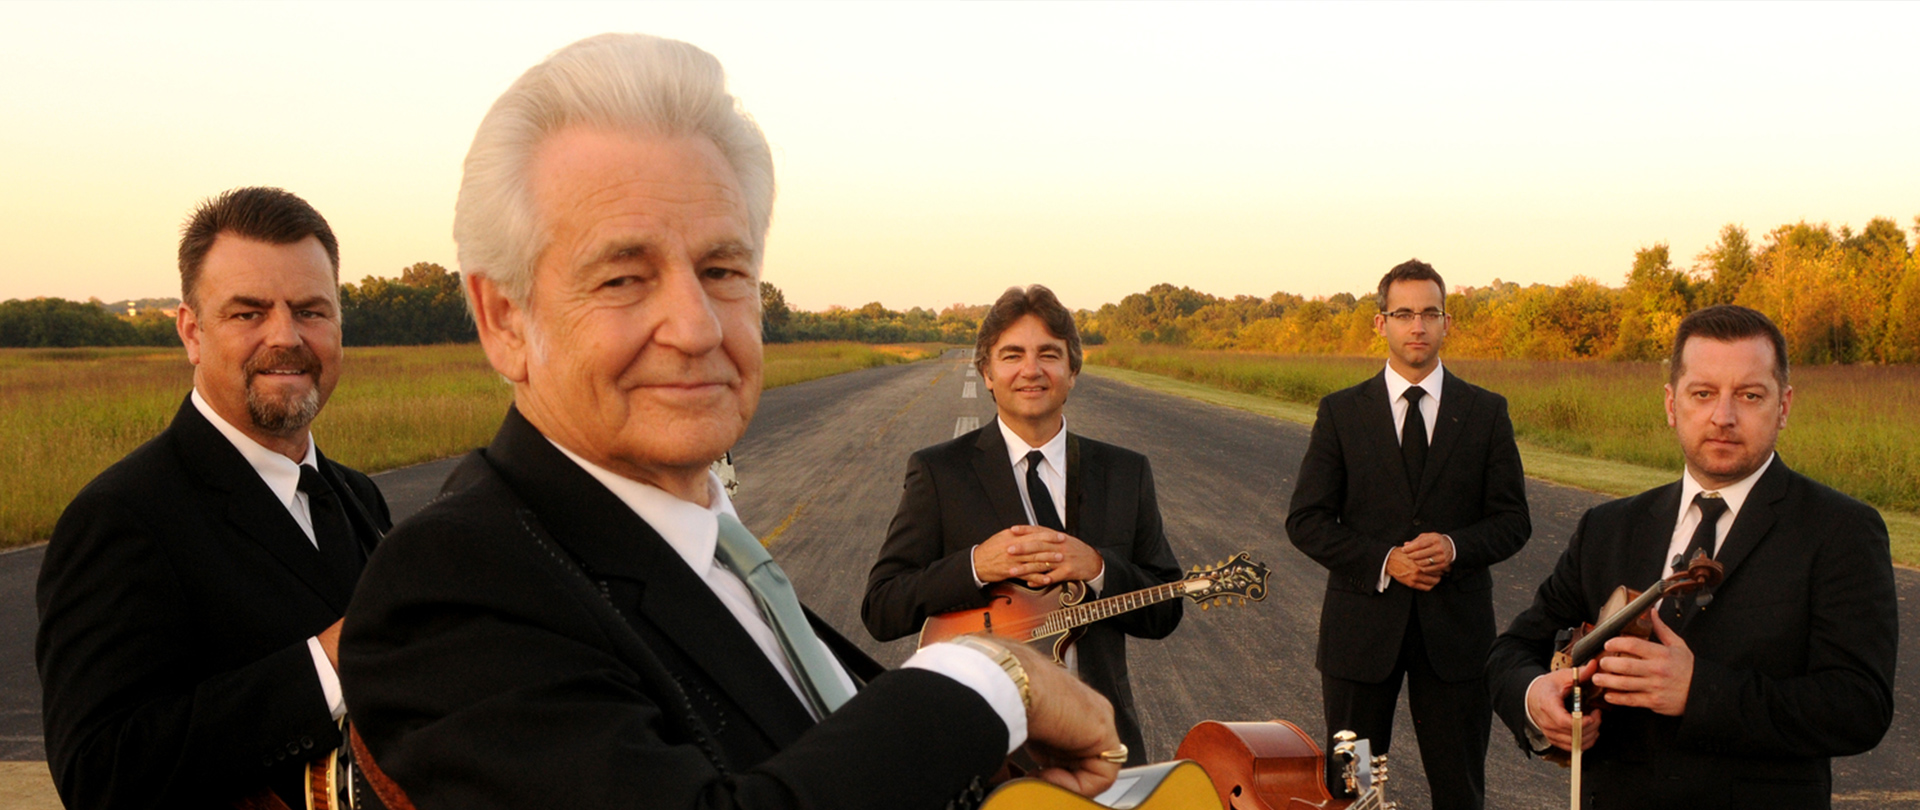 Del McCoury & The Travelin' McCourys